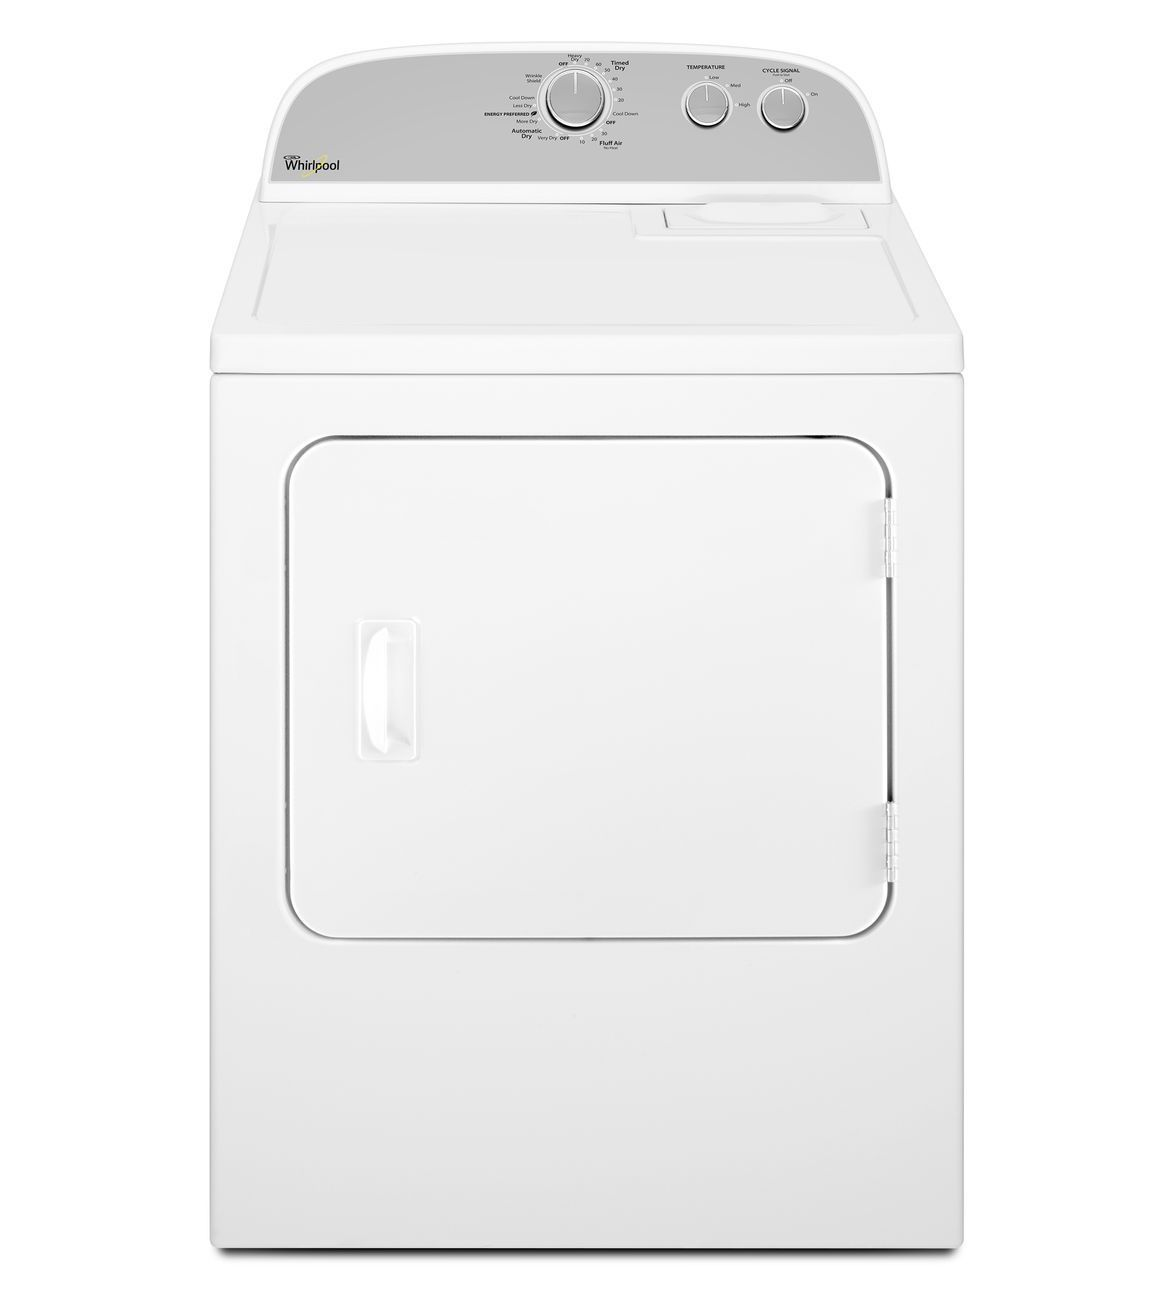 7.0 cu. ft. Gas Dryer with Heavy Duty Cycle